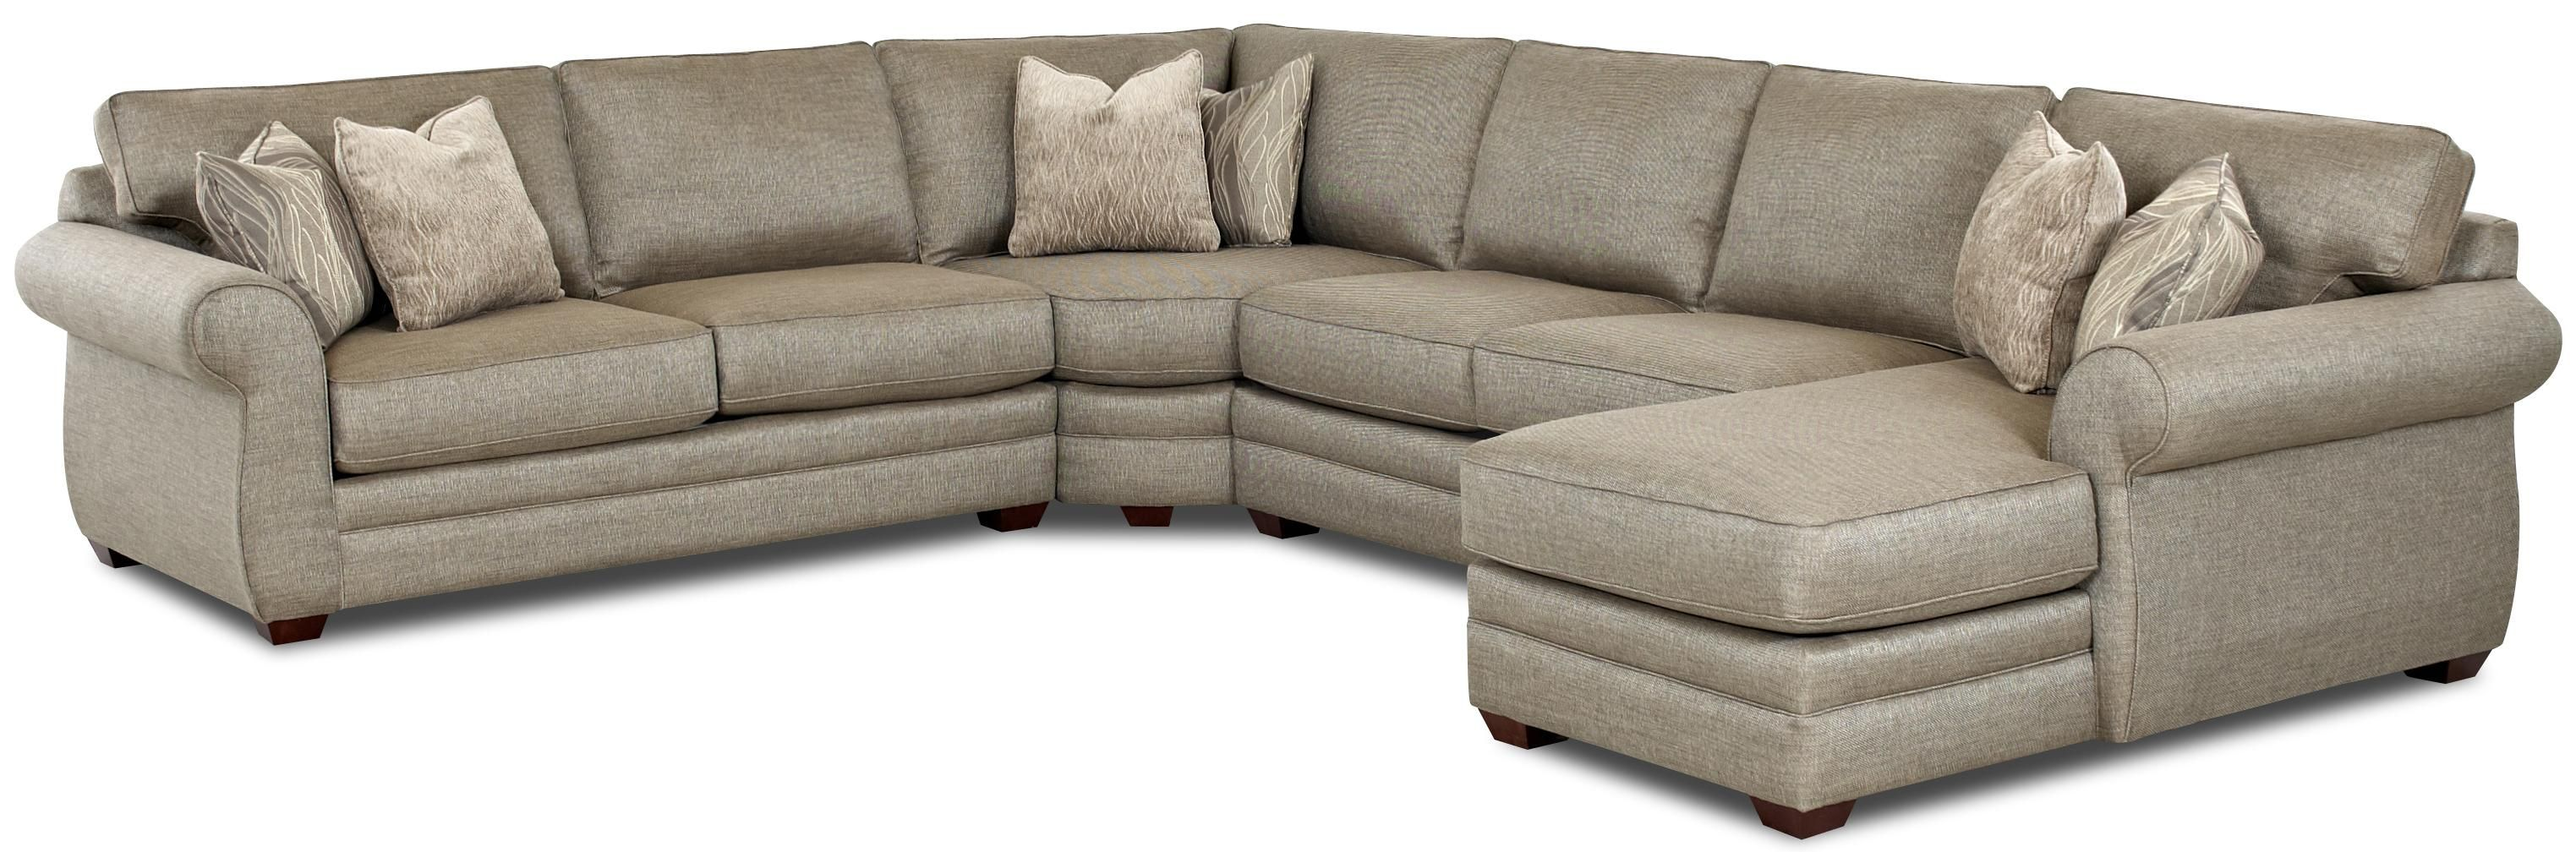 Clanton Transitional Sectional Sofa with Right Chaise by Klaussner